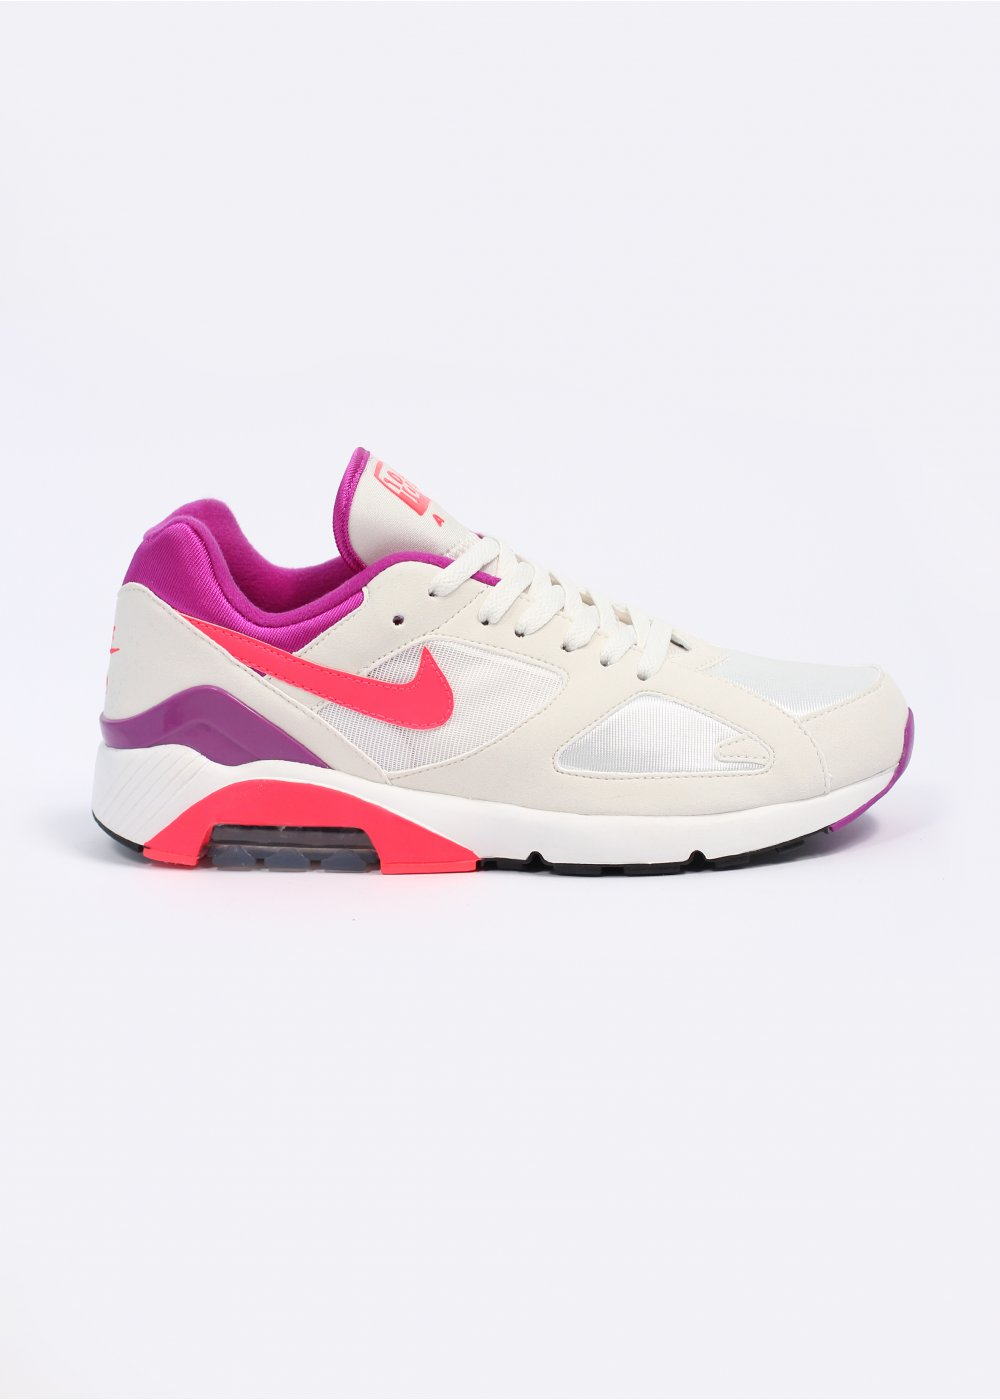 huge selection of abcf5 14553 Air Max 180 QS Trainers - Summit White  Laser Crimson  Magenta